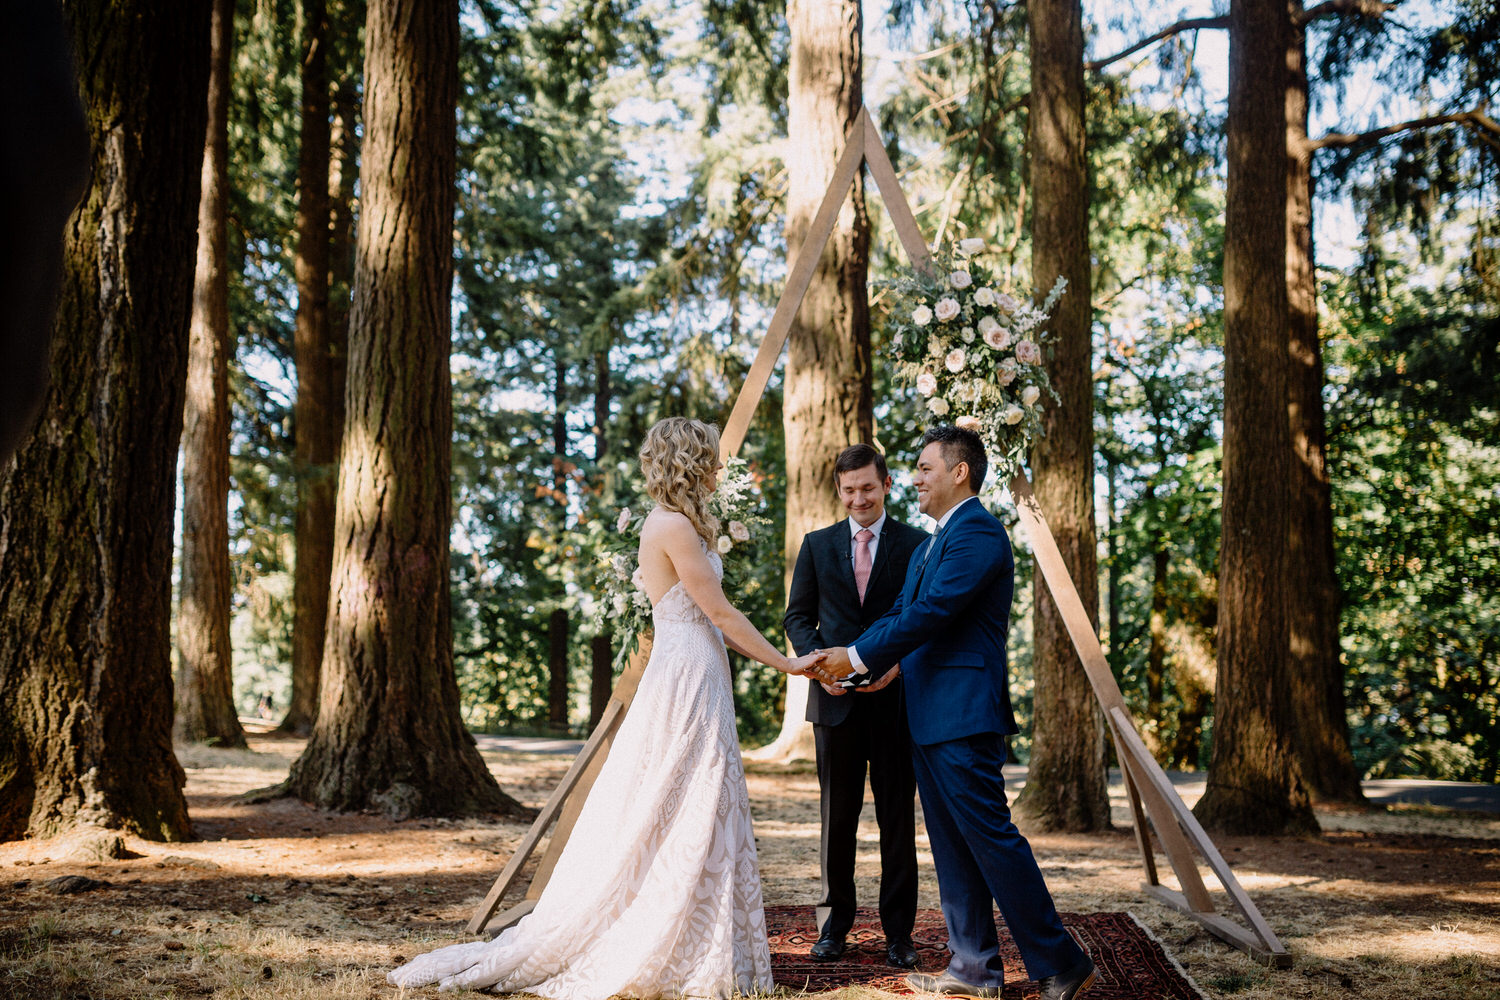 Mount Tabor Portland Oregon wedding photographer039.JPG